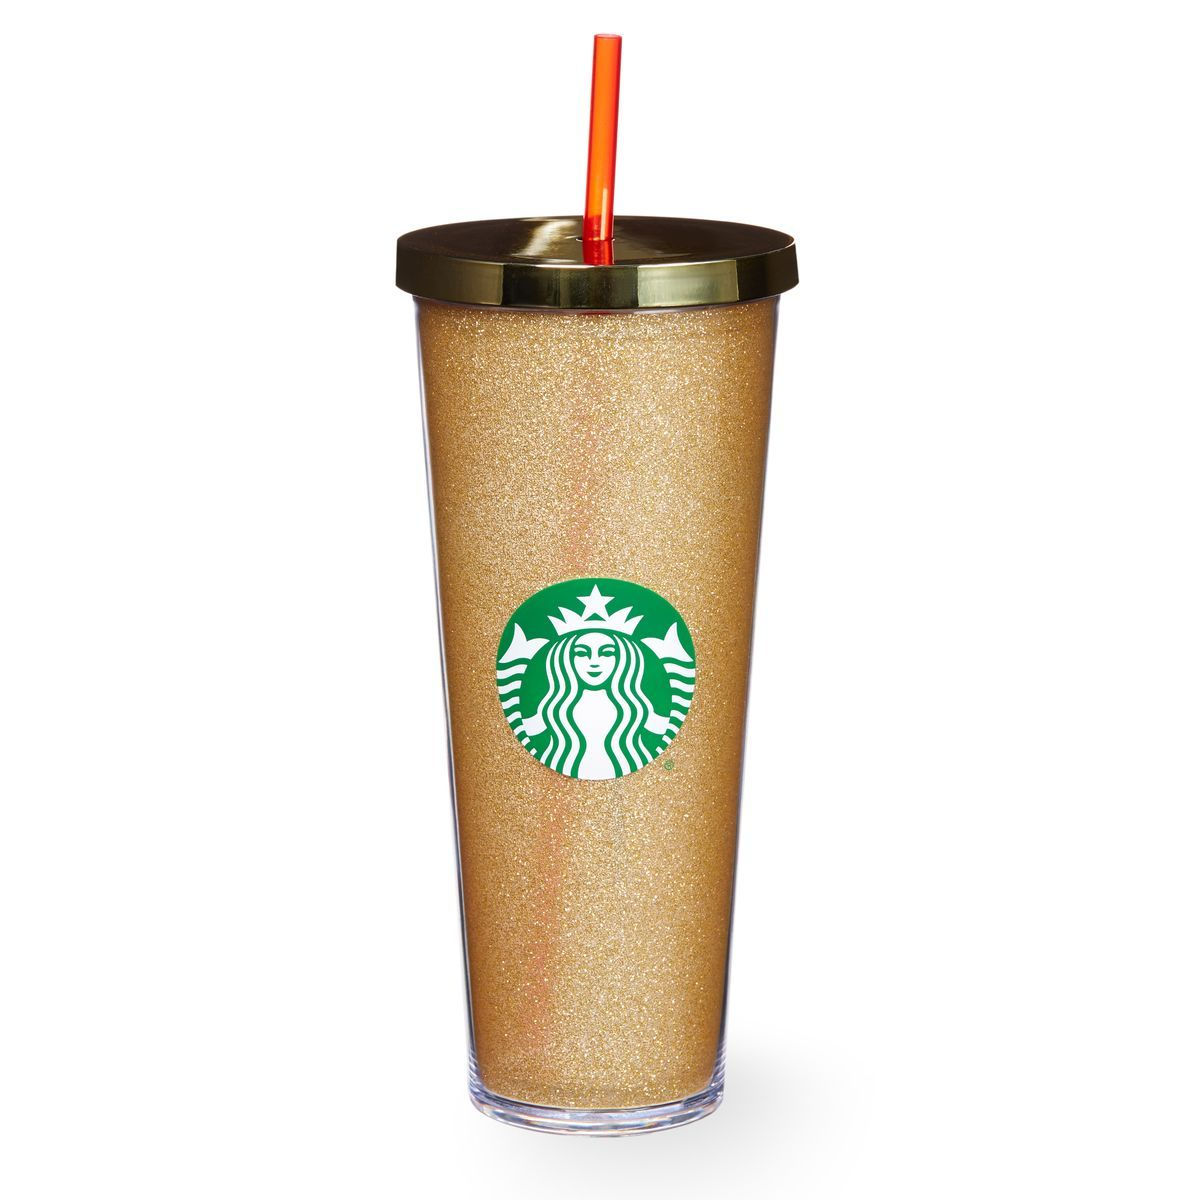 A Sturdy, Venti-size Plastic Cold Cup Covered With Gold